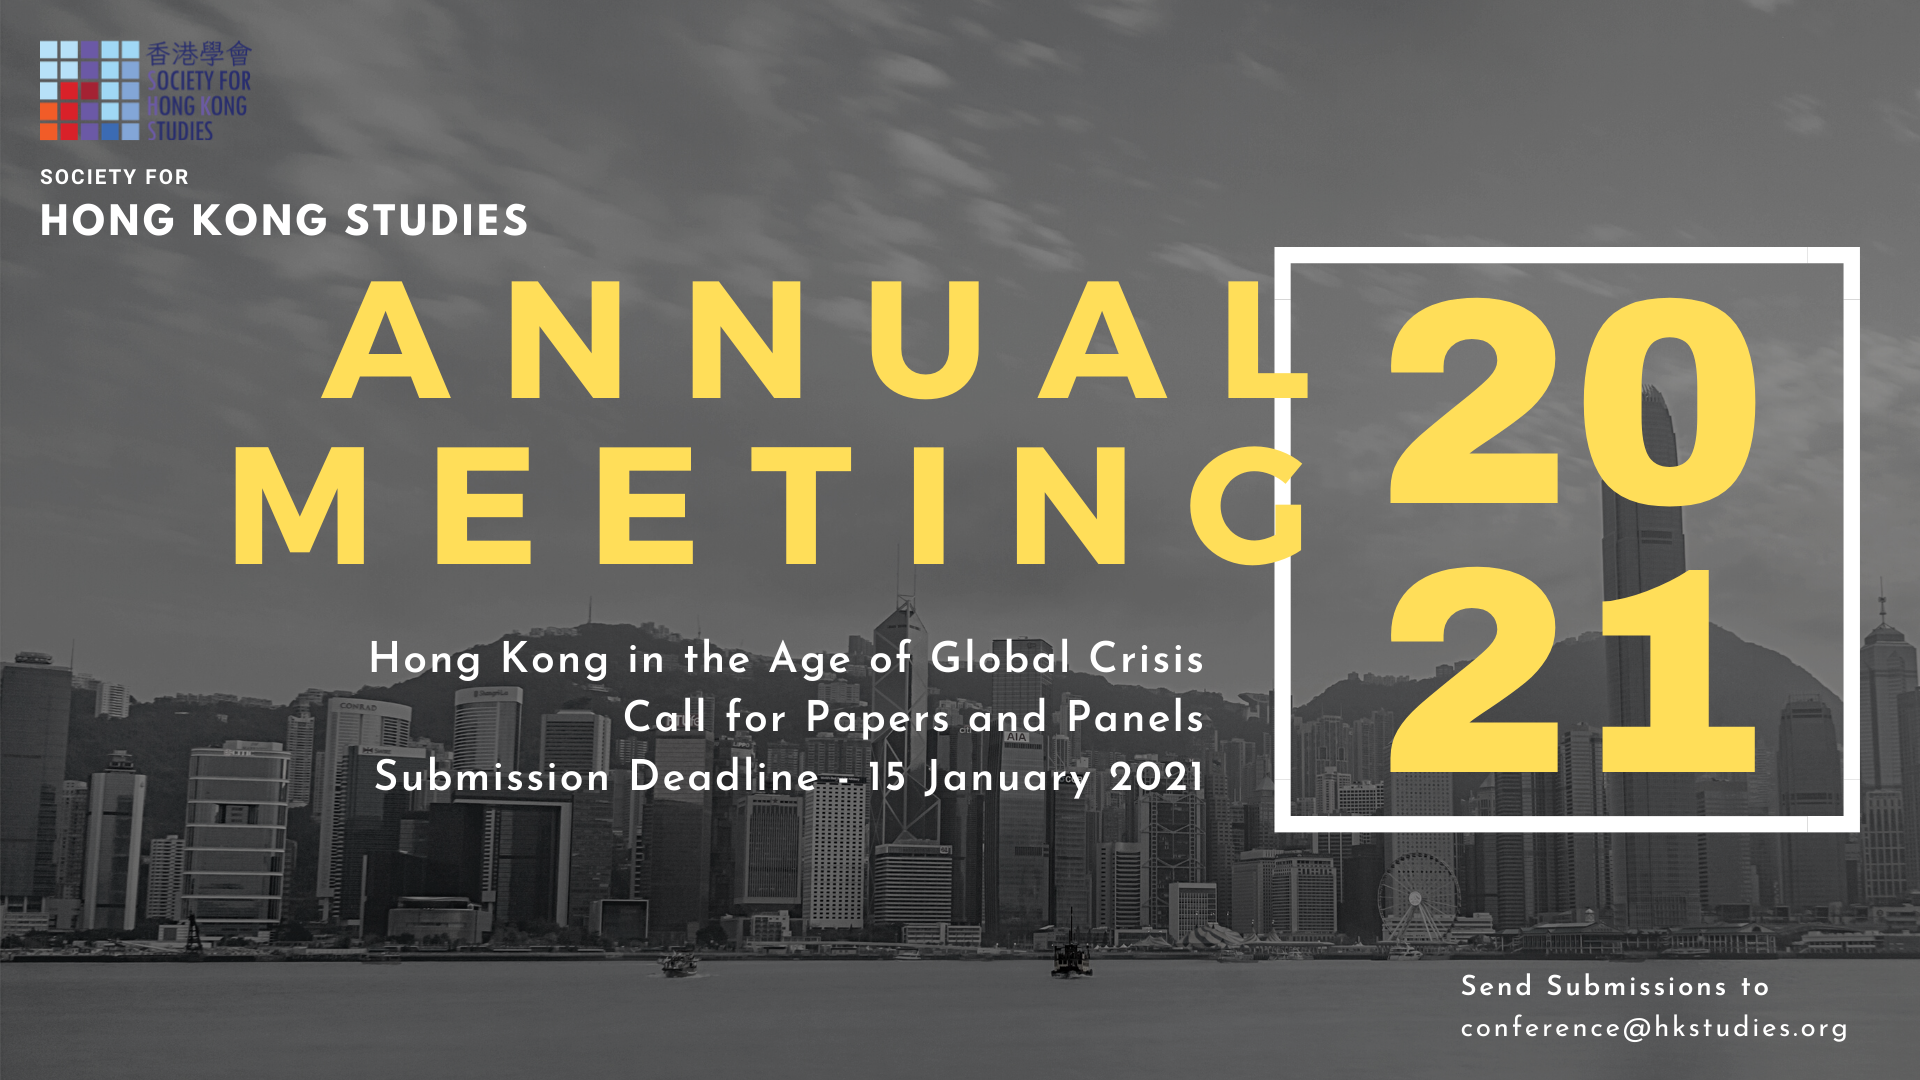 Society for Hong Kong Studies - Annual Meeting 2021 Call for Papers and Panels